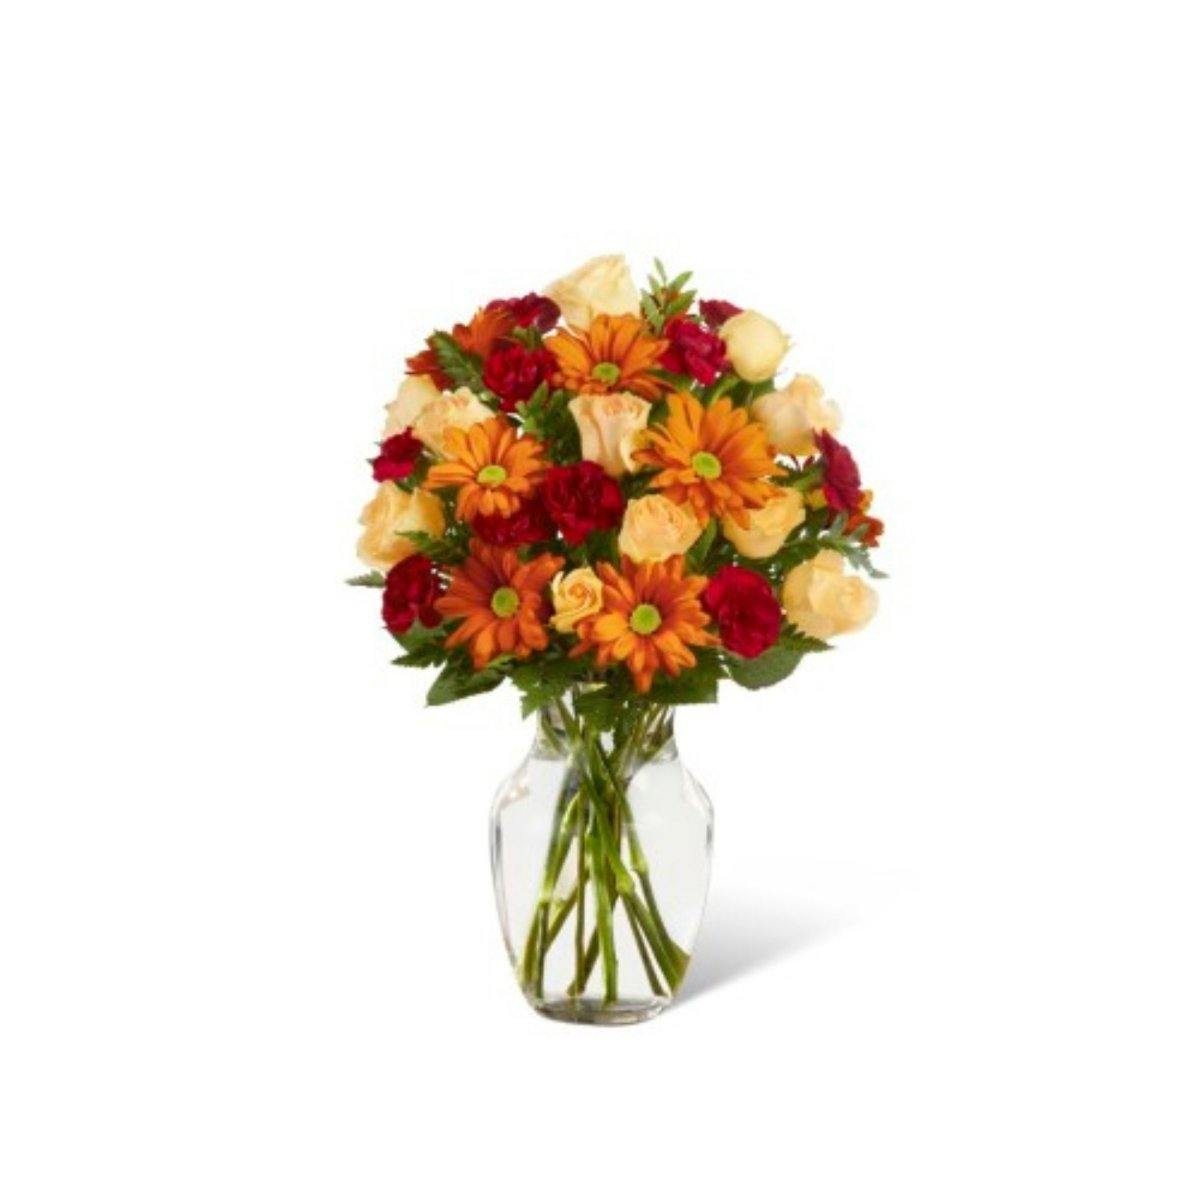 The FTD® Golden Autumn Bouquet